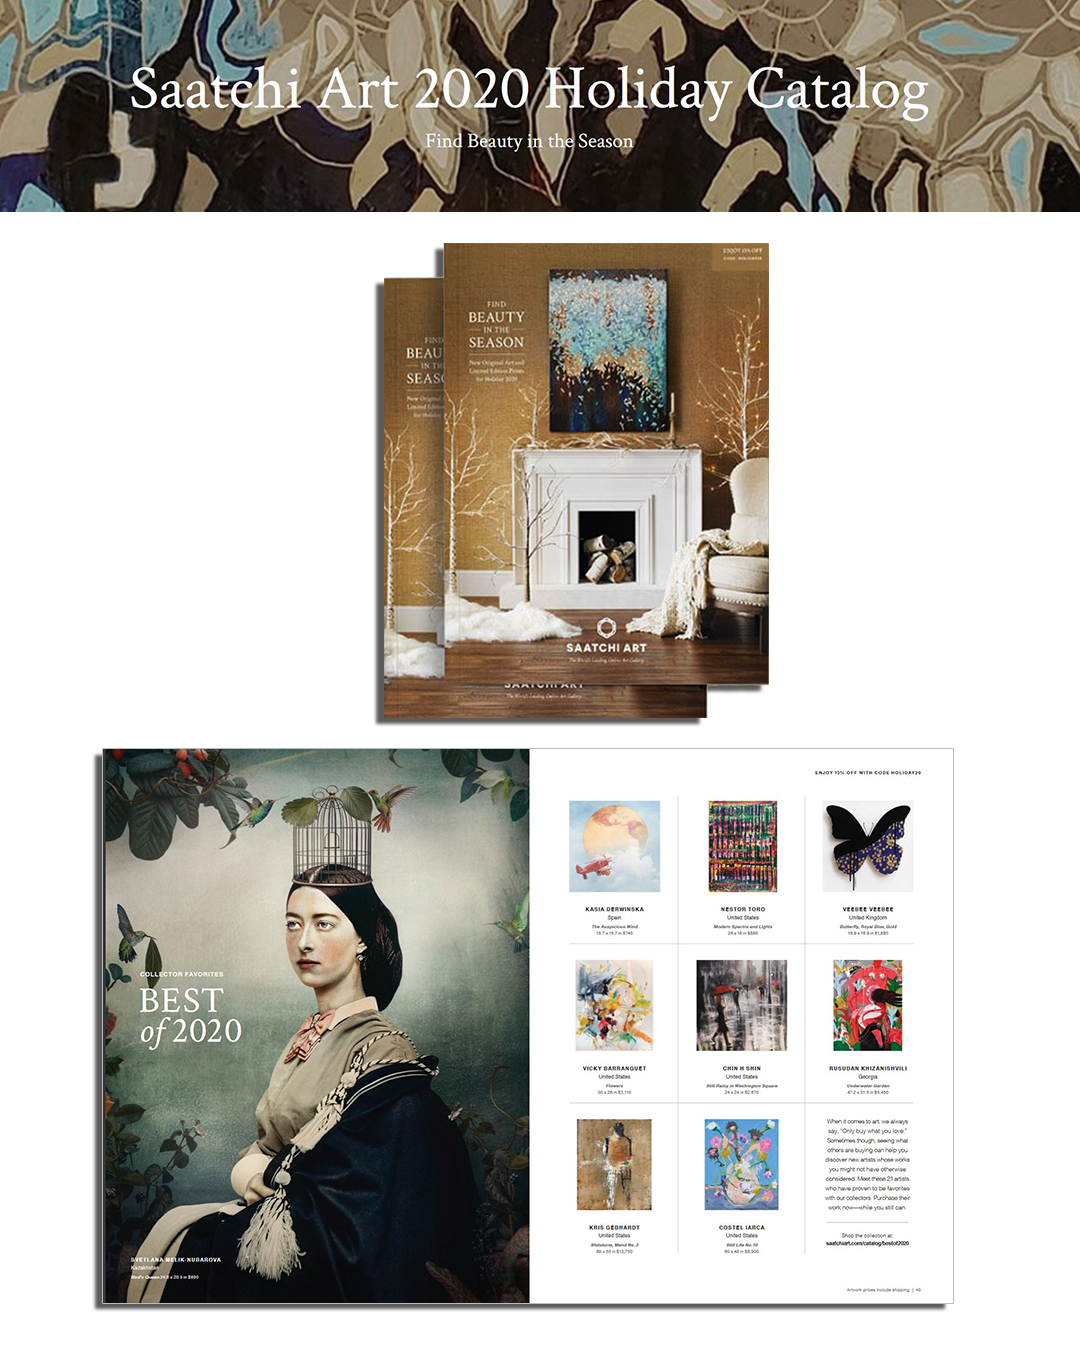 Saatchi Art Holiday 2020 Print Catalog with my work included in this special print edition!